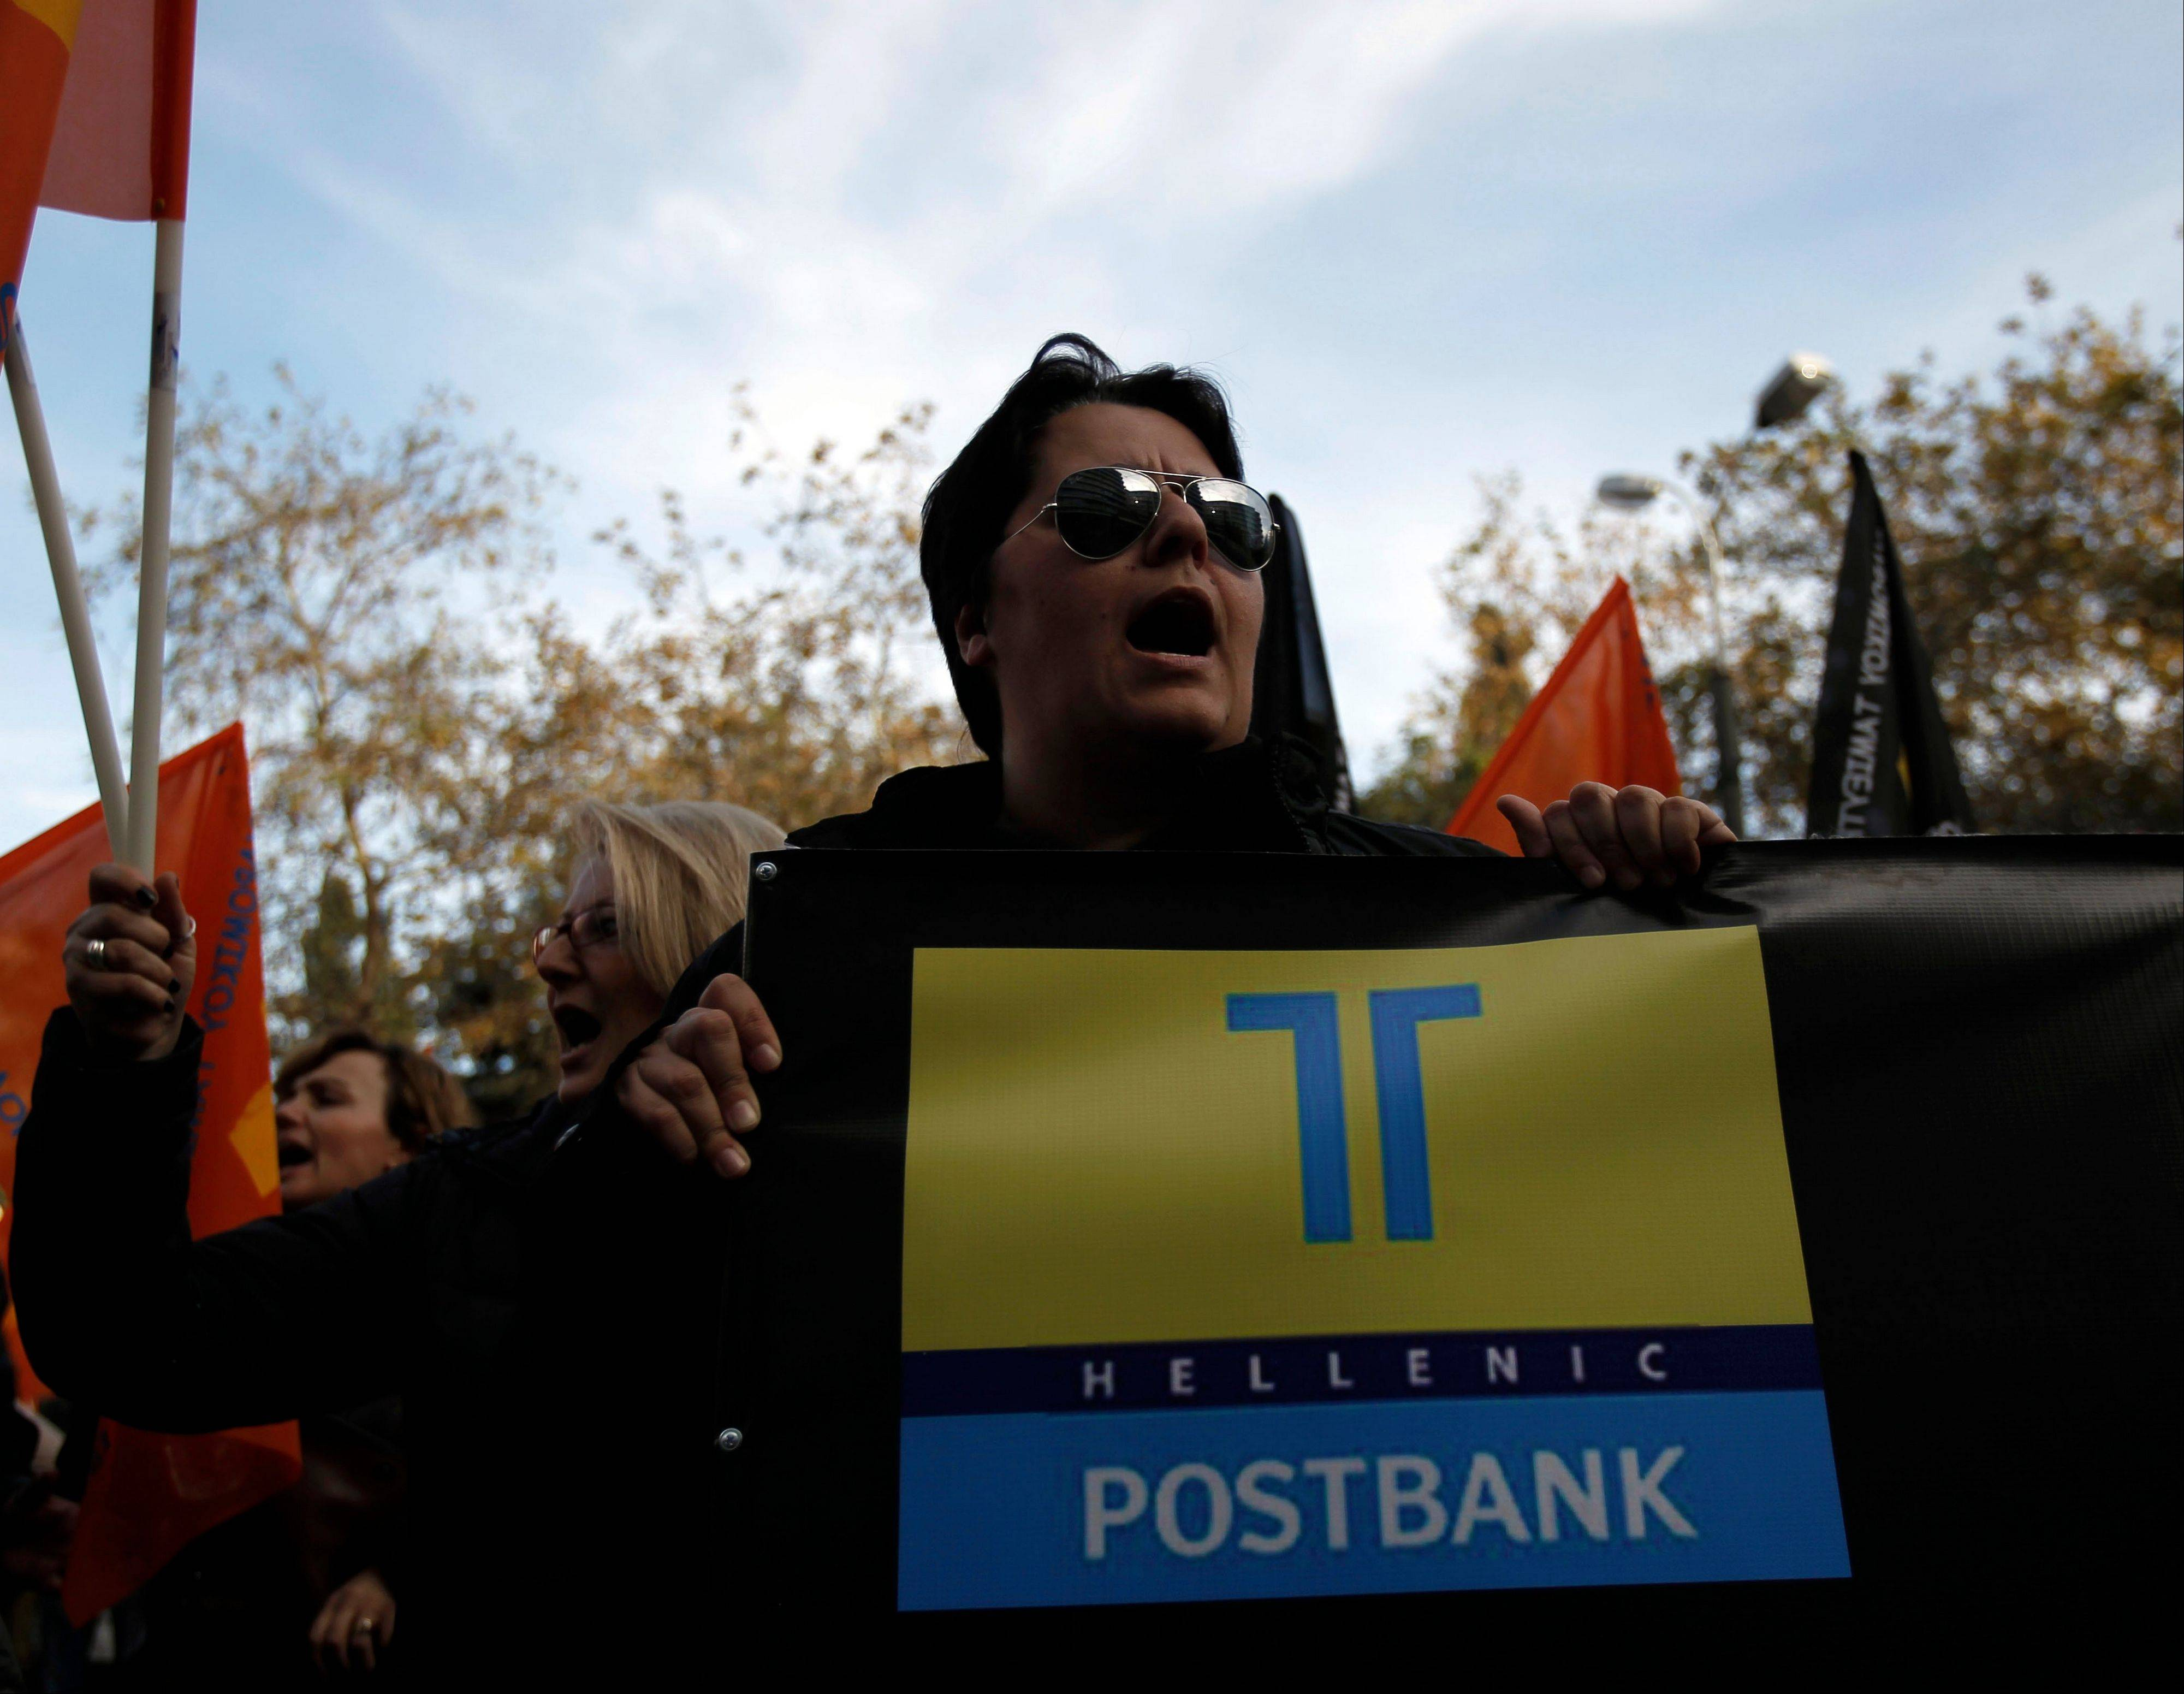 Civil servants in Greece are on a 24-hour strike against new austerity measures that will see more pay cuts next year as well as a rare round of job cuts.